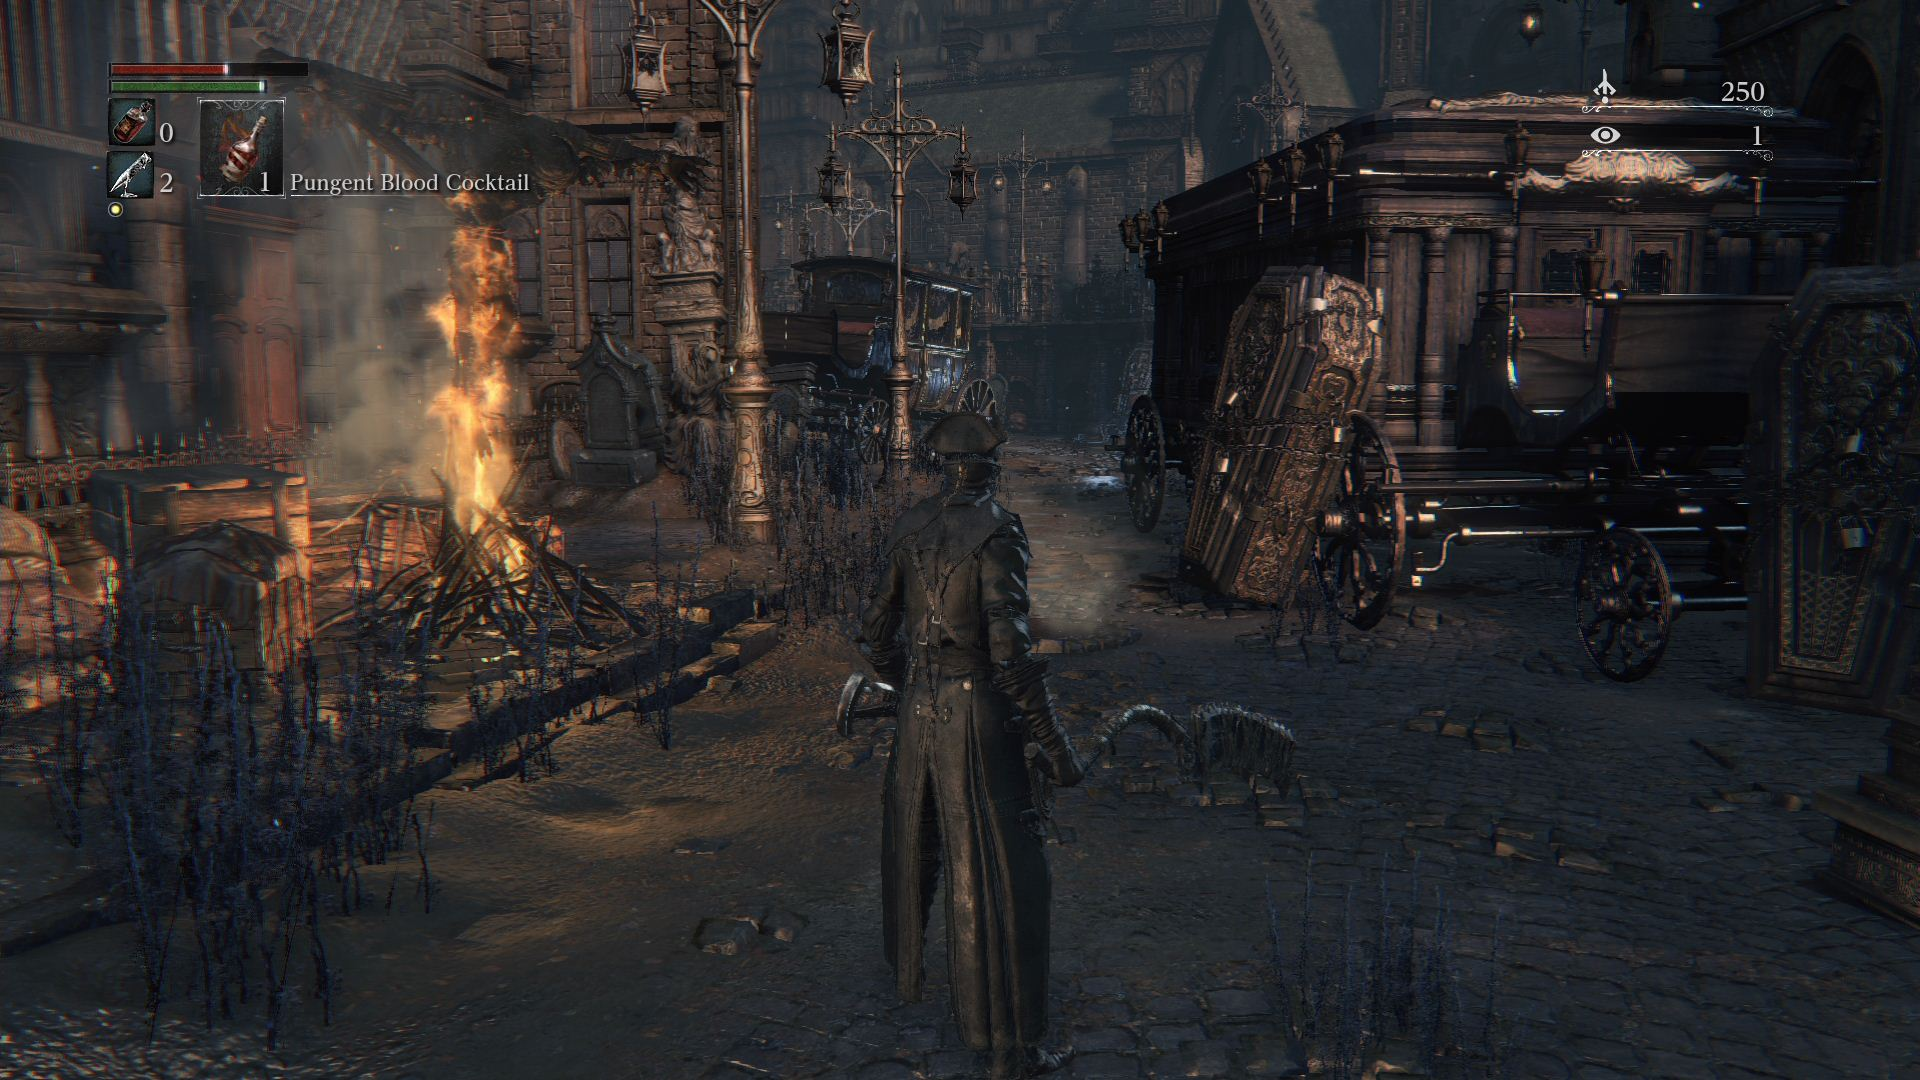 Does Bloodborne Set New Benchmarks For Graphics And Performance On PS4?